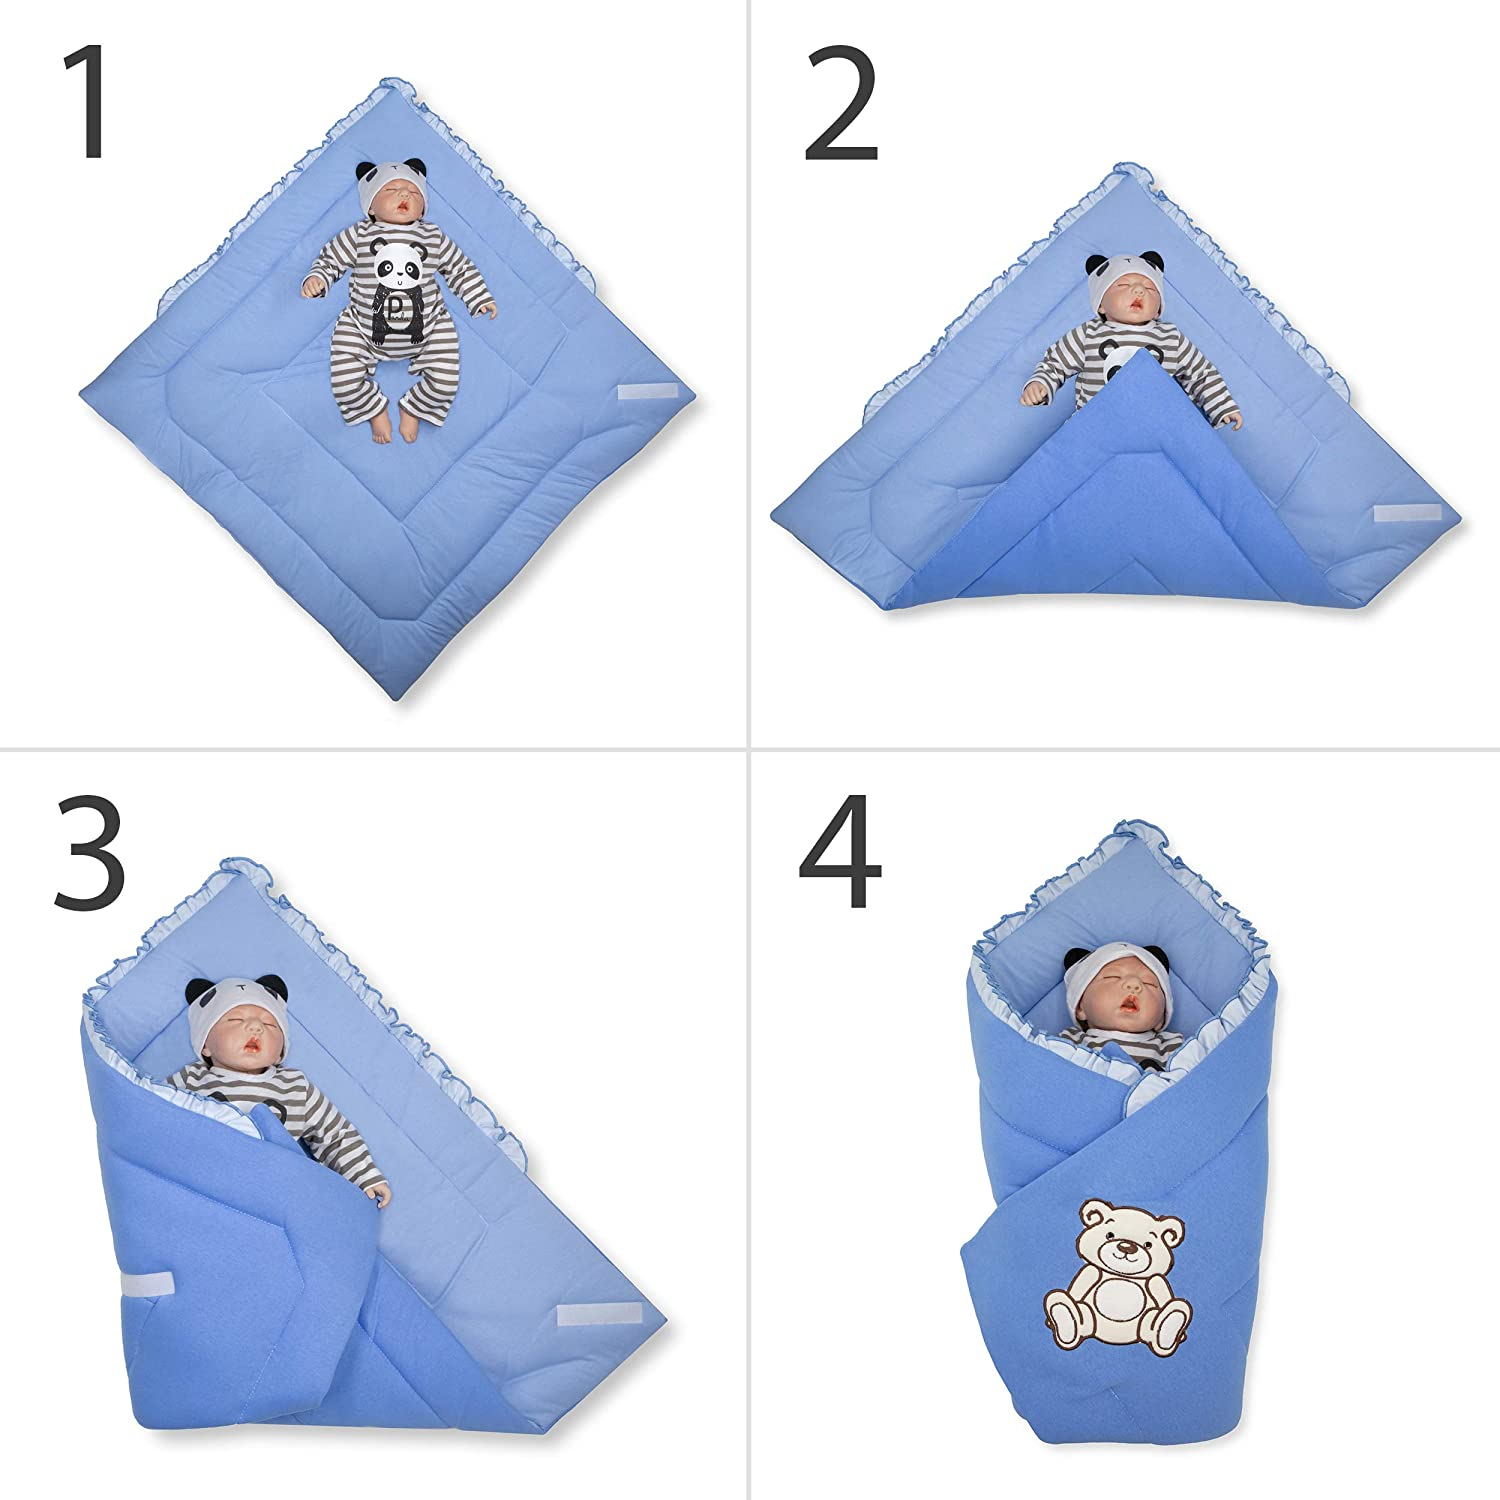 Sleeping Bag for Newborns BlueberryShop Jersey Baby Swaddle Wrap Bedding Blanket 78 x 78 cm Yellow Intended for Kids Aged 0-3 Months Perfect as a Baby Shower Gift